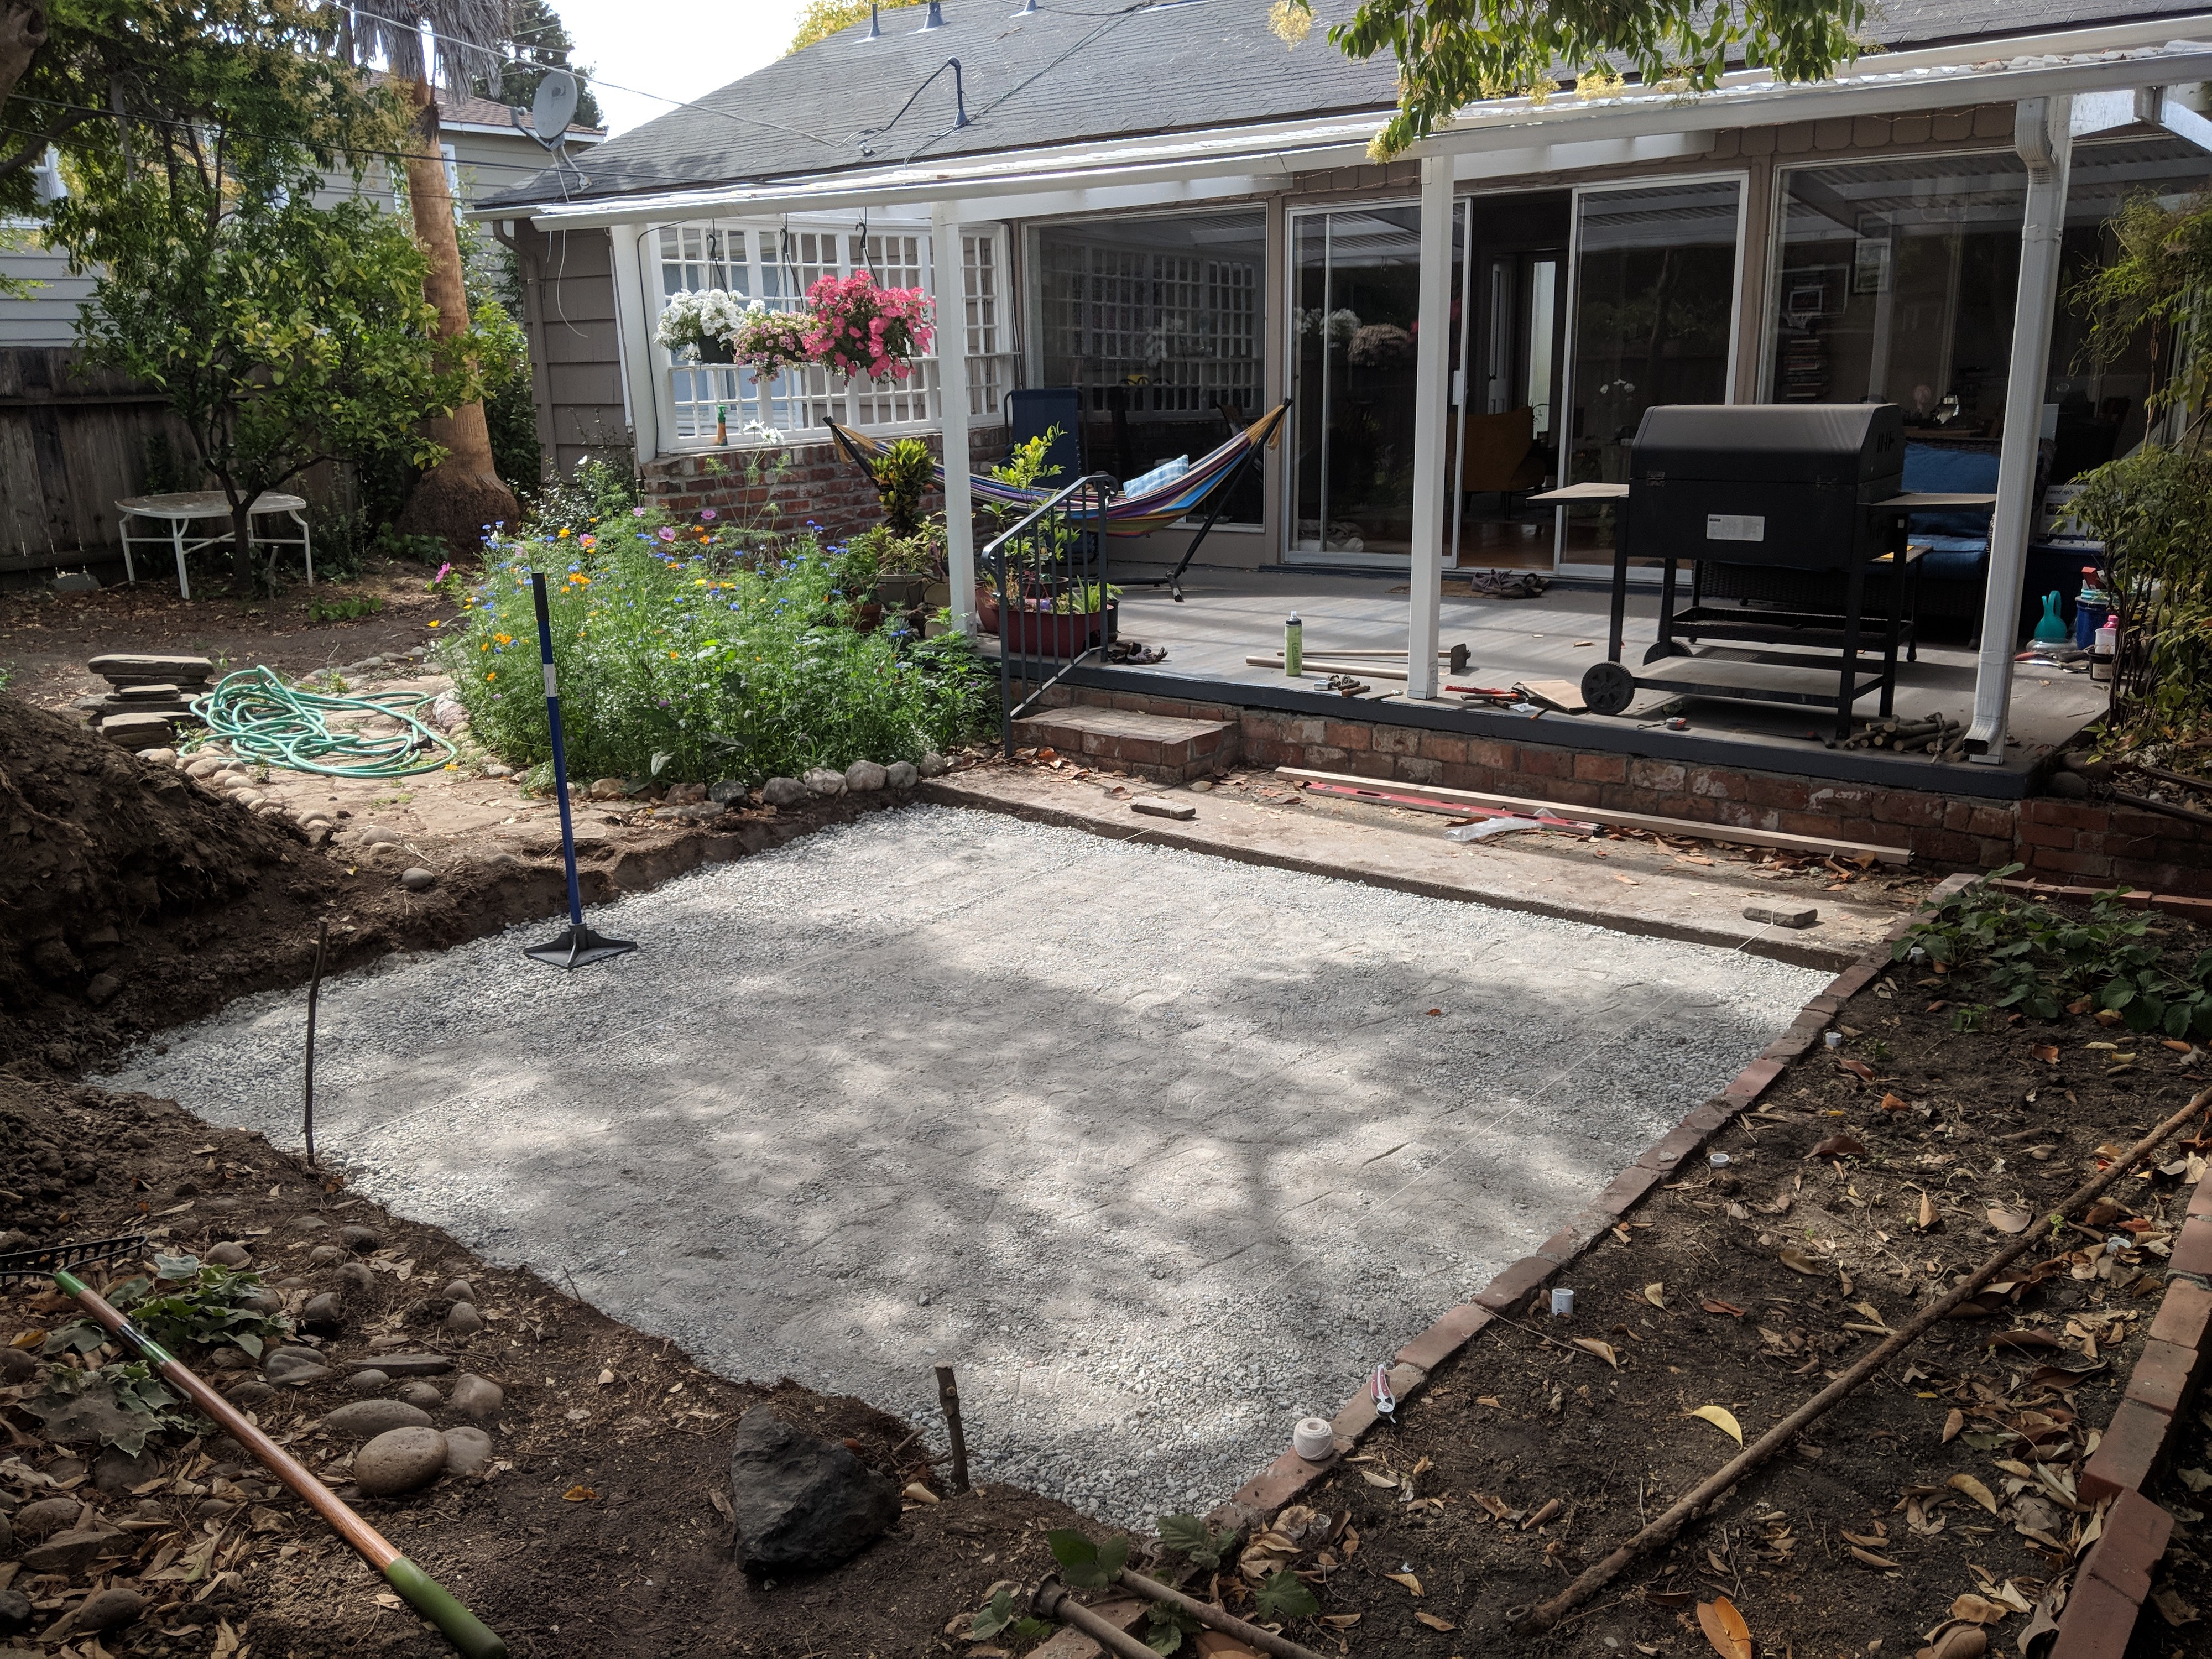 Amateur Hour Build Your Own Patio In A Weekend Ish By Melanie Lei Medium